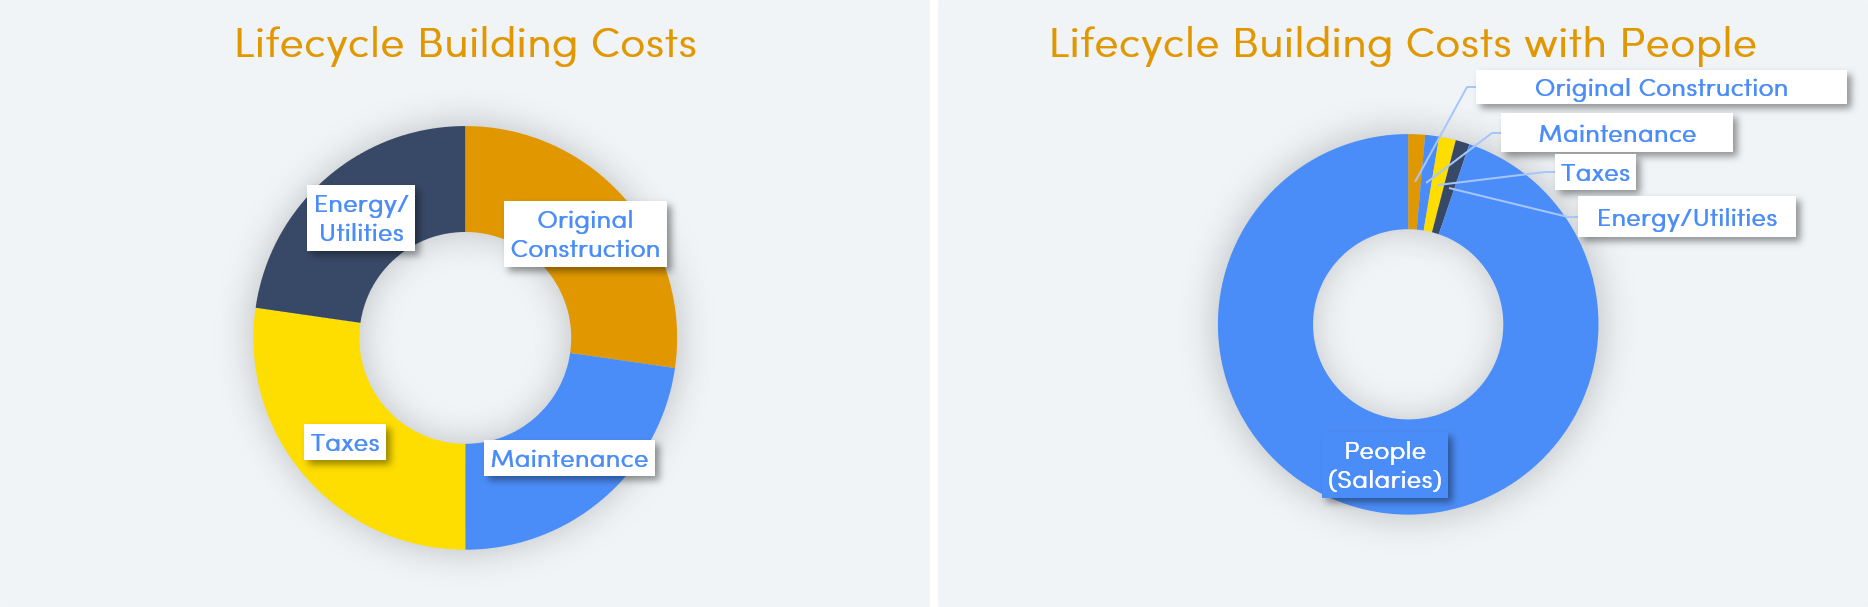 Building Lifecycle Costs.png